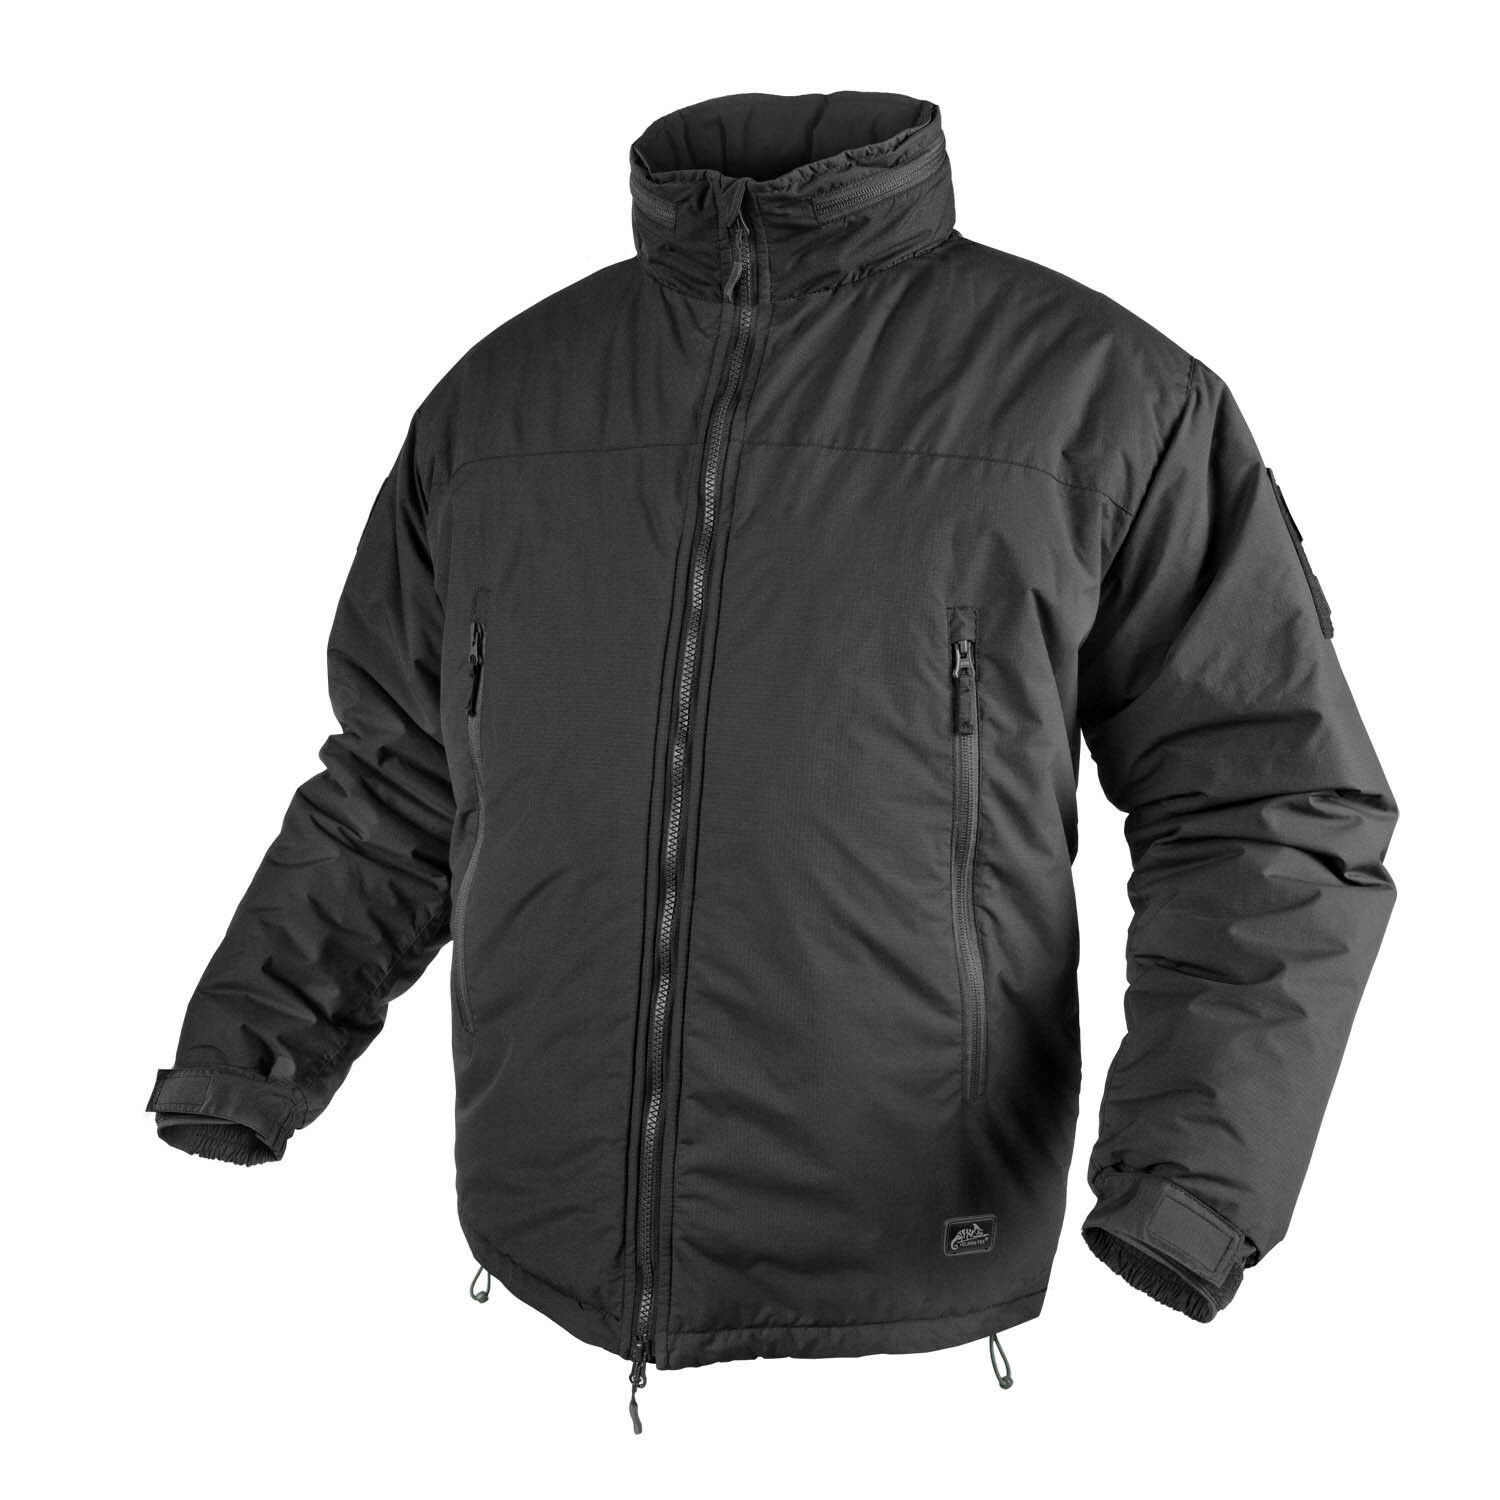 Helikon Tex Level 7 Apex Climashield Cold Weather Giacca Invernale Nero SSmtutti